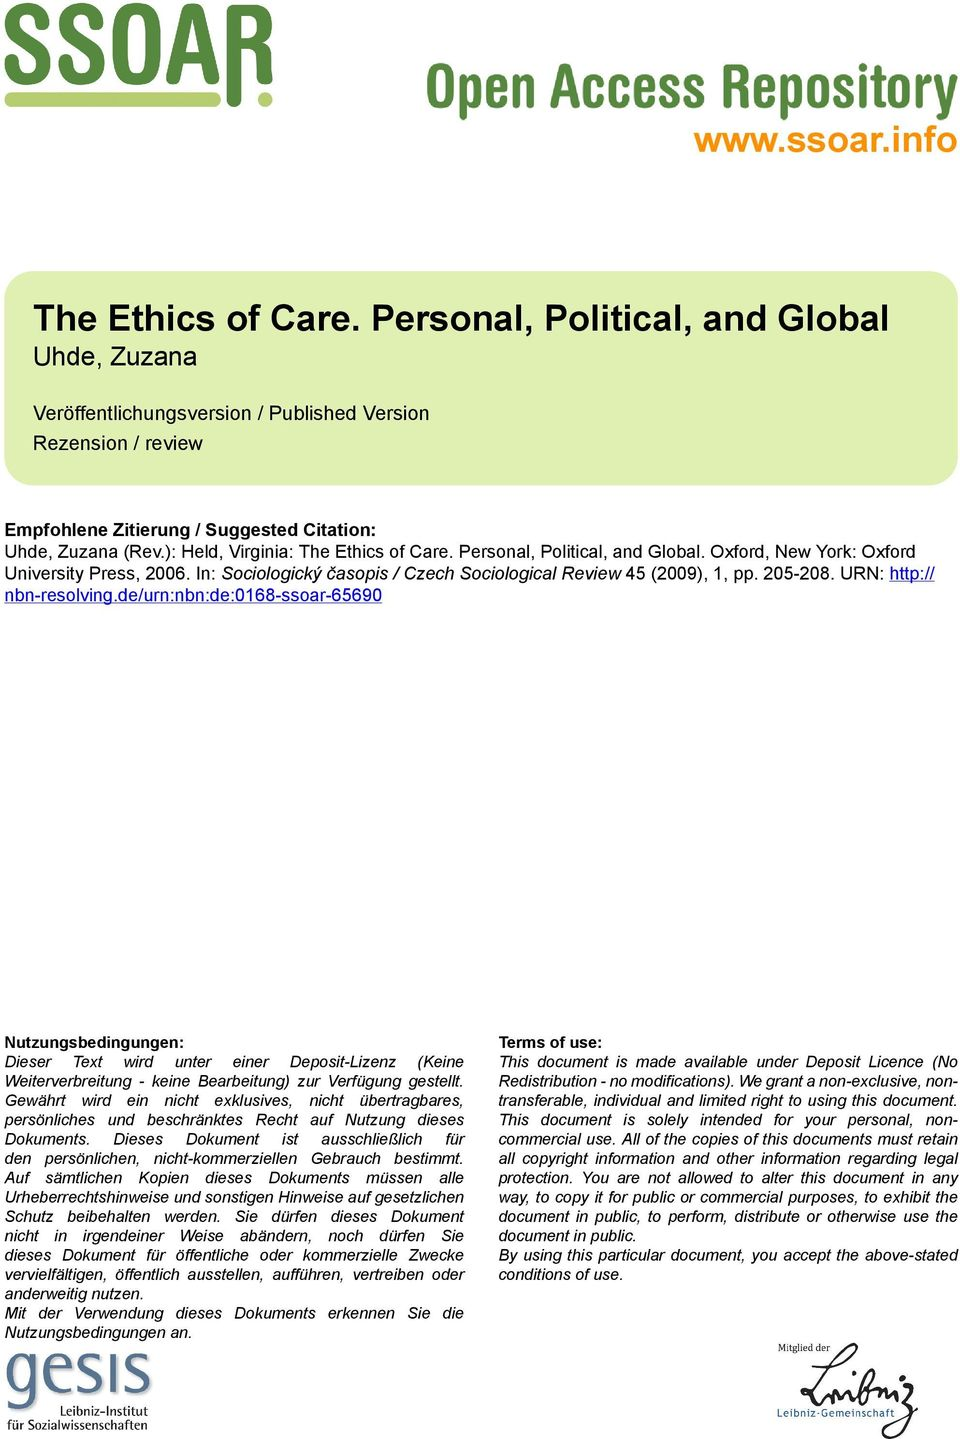 ): Held, Virginia: The Ethics of Care. Personal, Political, and Global. Oxford, New York: Oxford University Press, 2006. In: Sociologický časopis / Czech Sociological Review 45 (2009), 1, pp. 205-208.